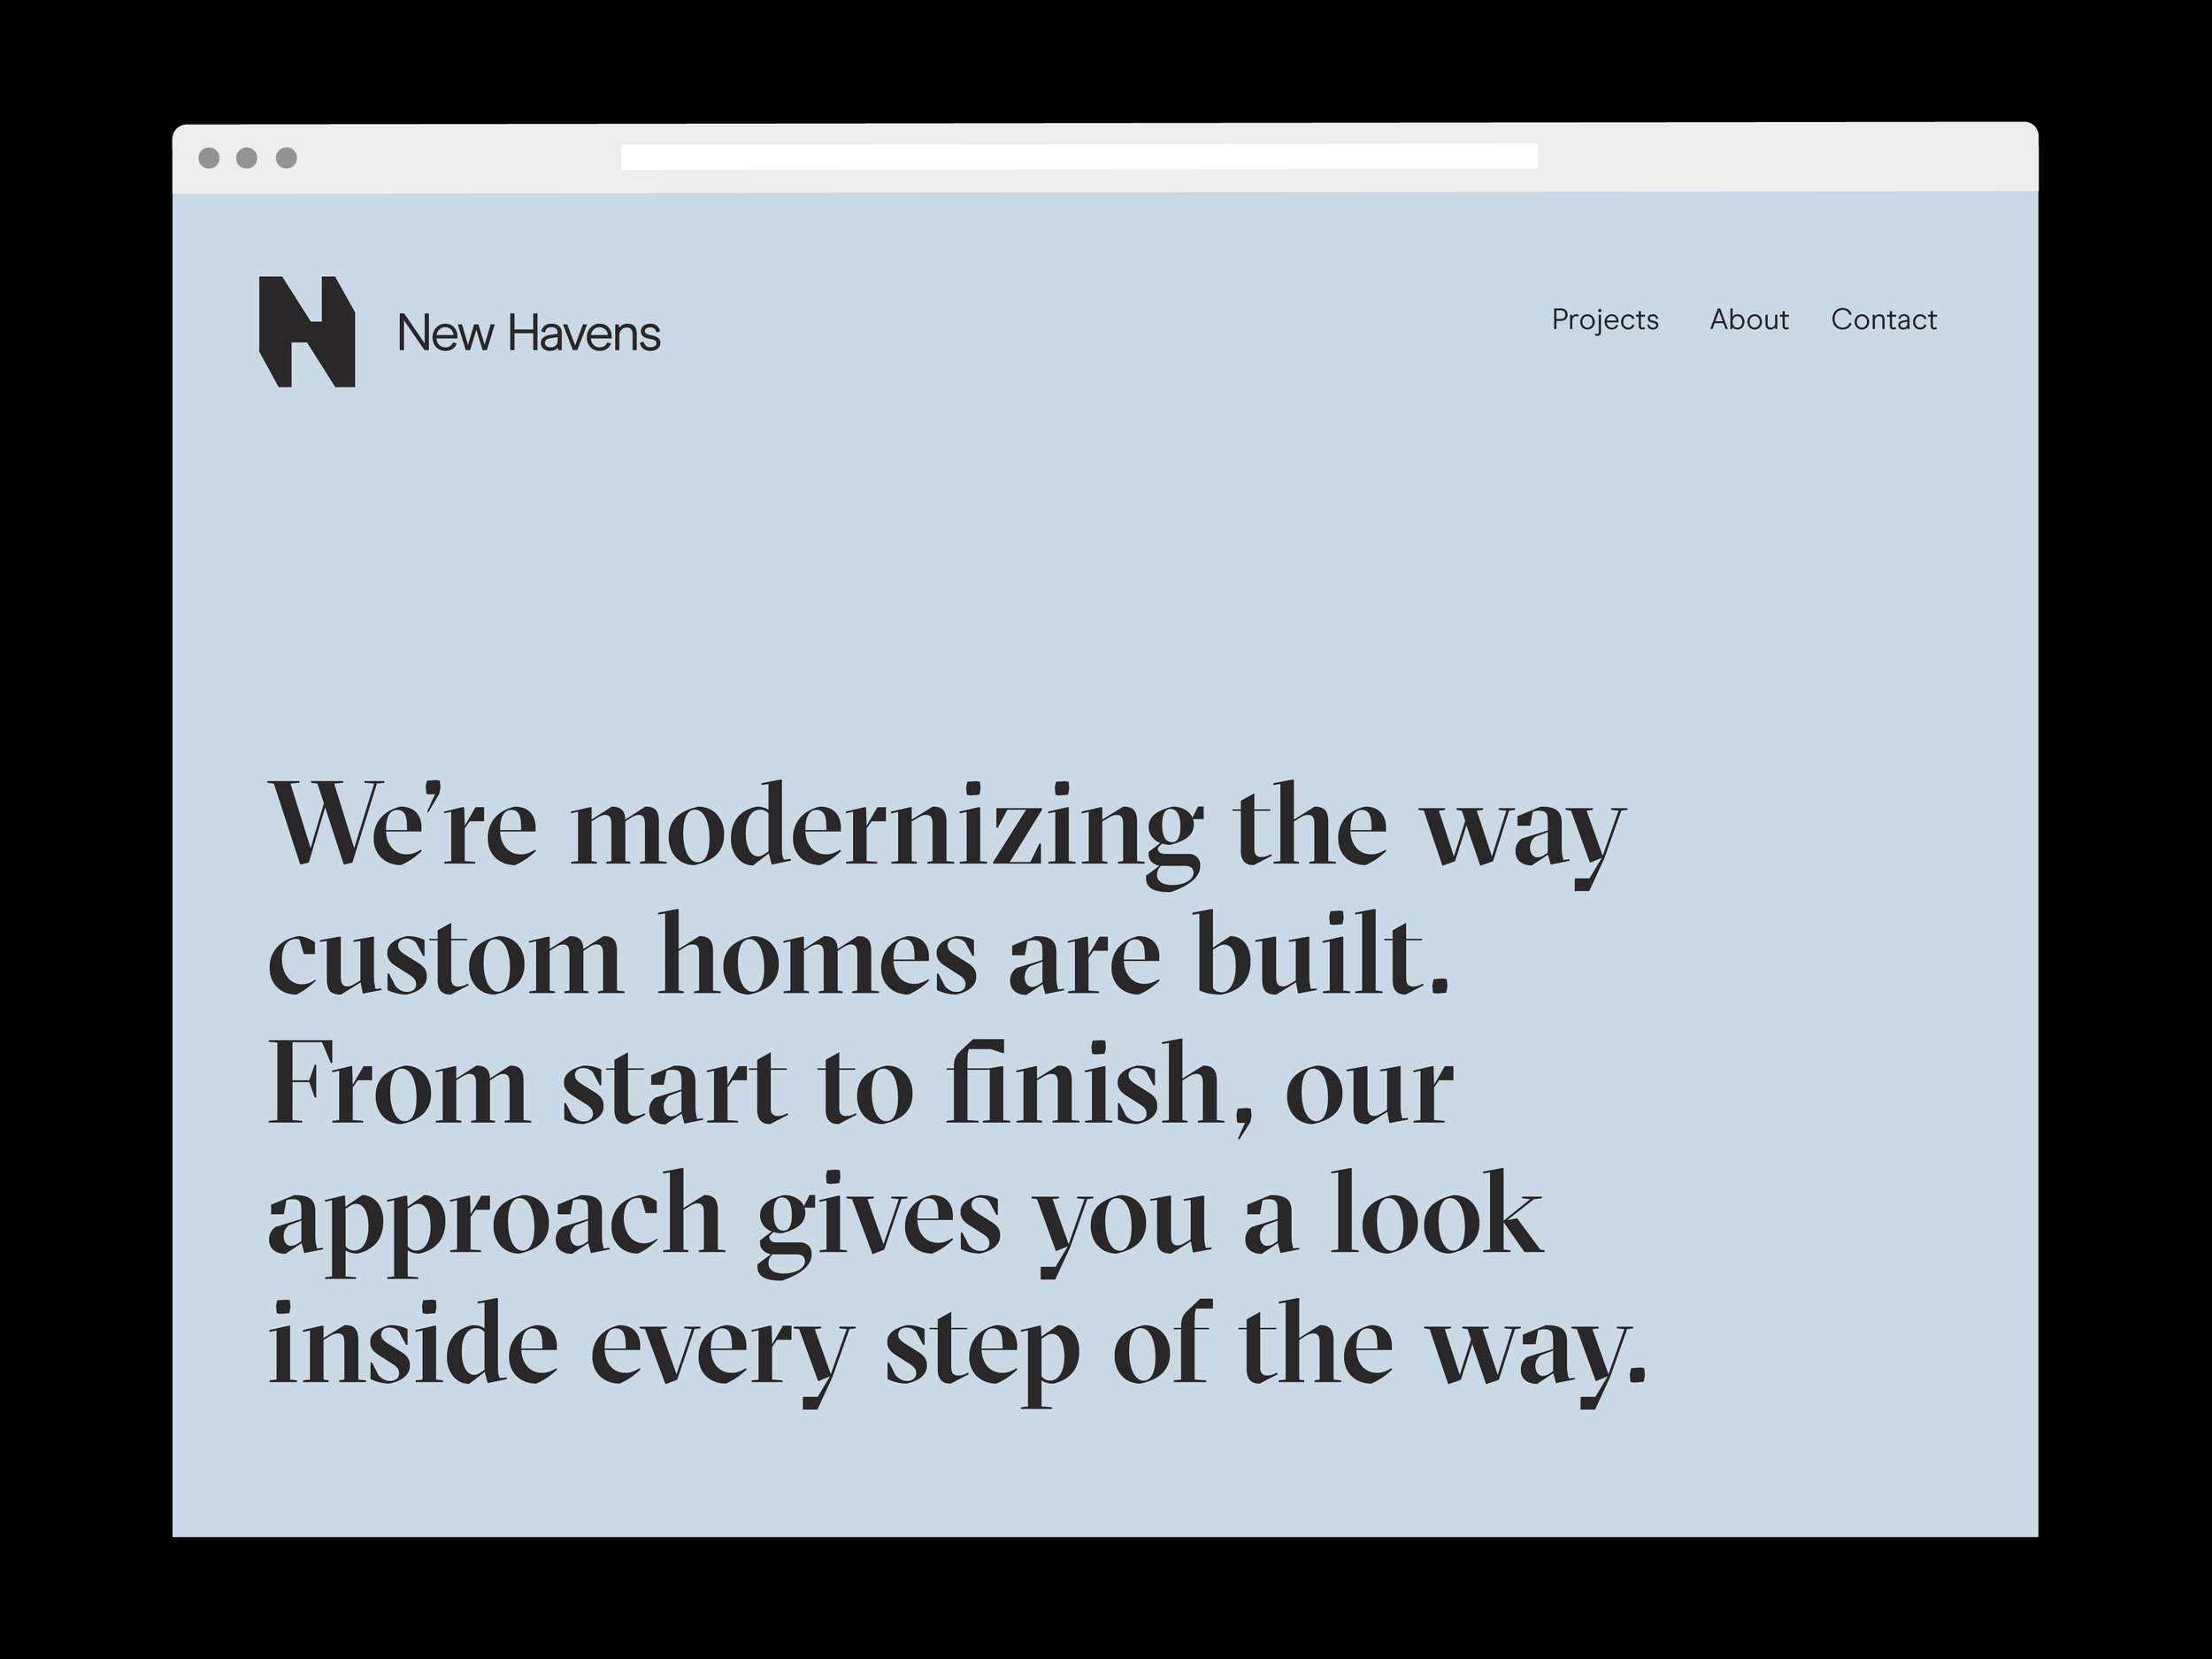 Studio Freight - New Havens Website About Page